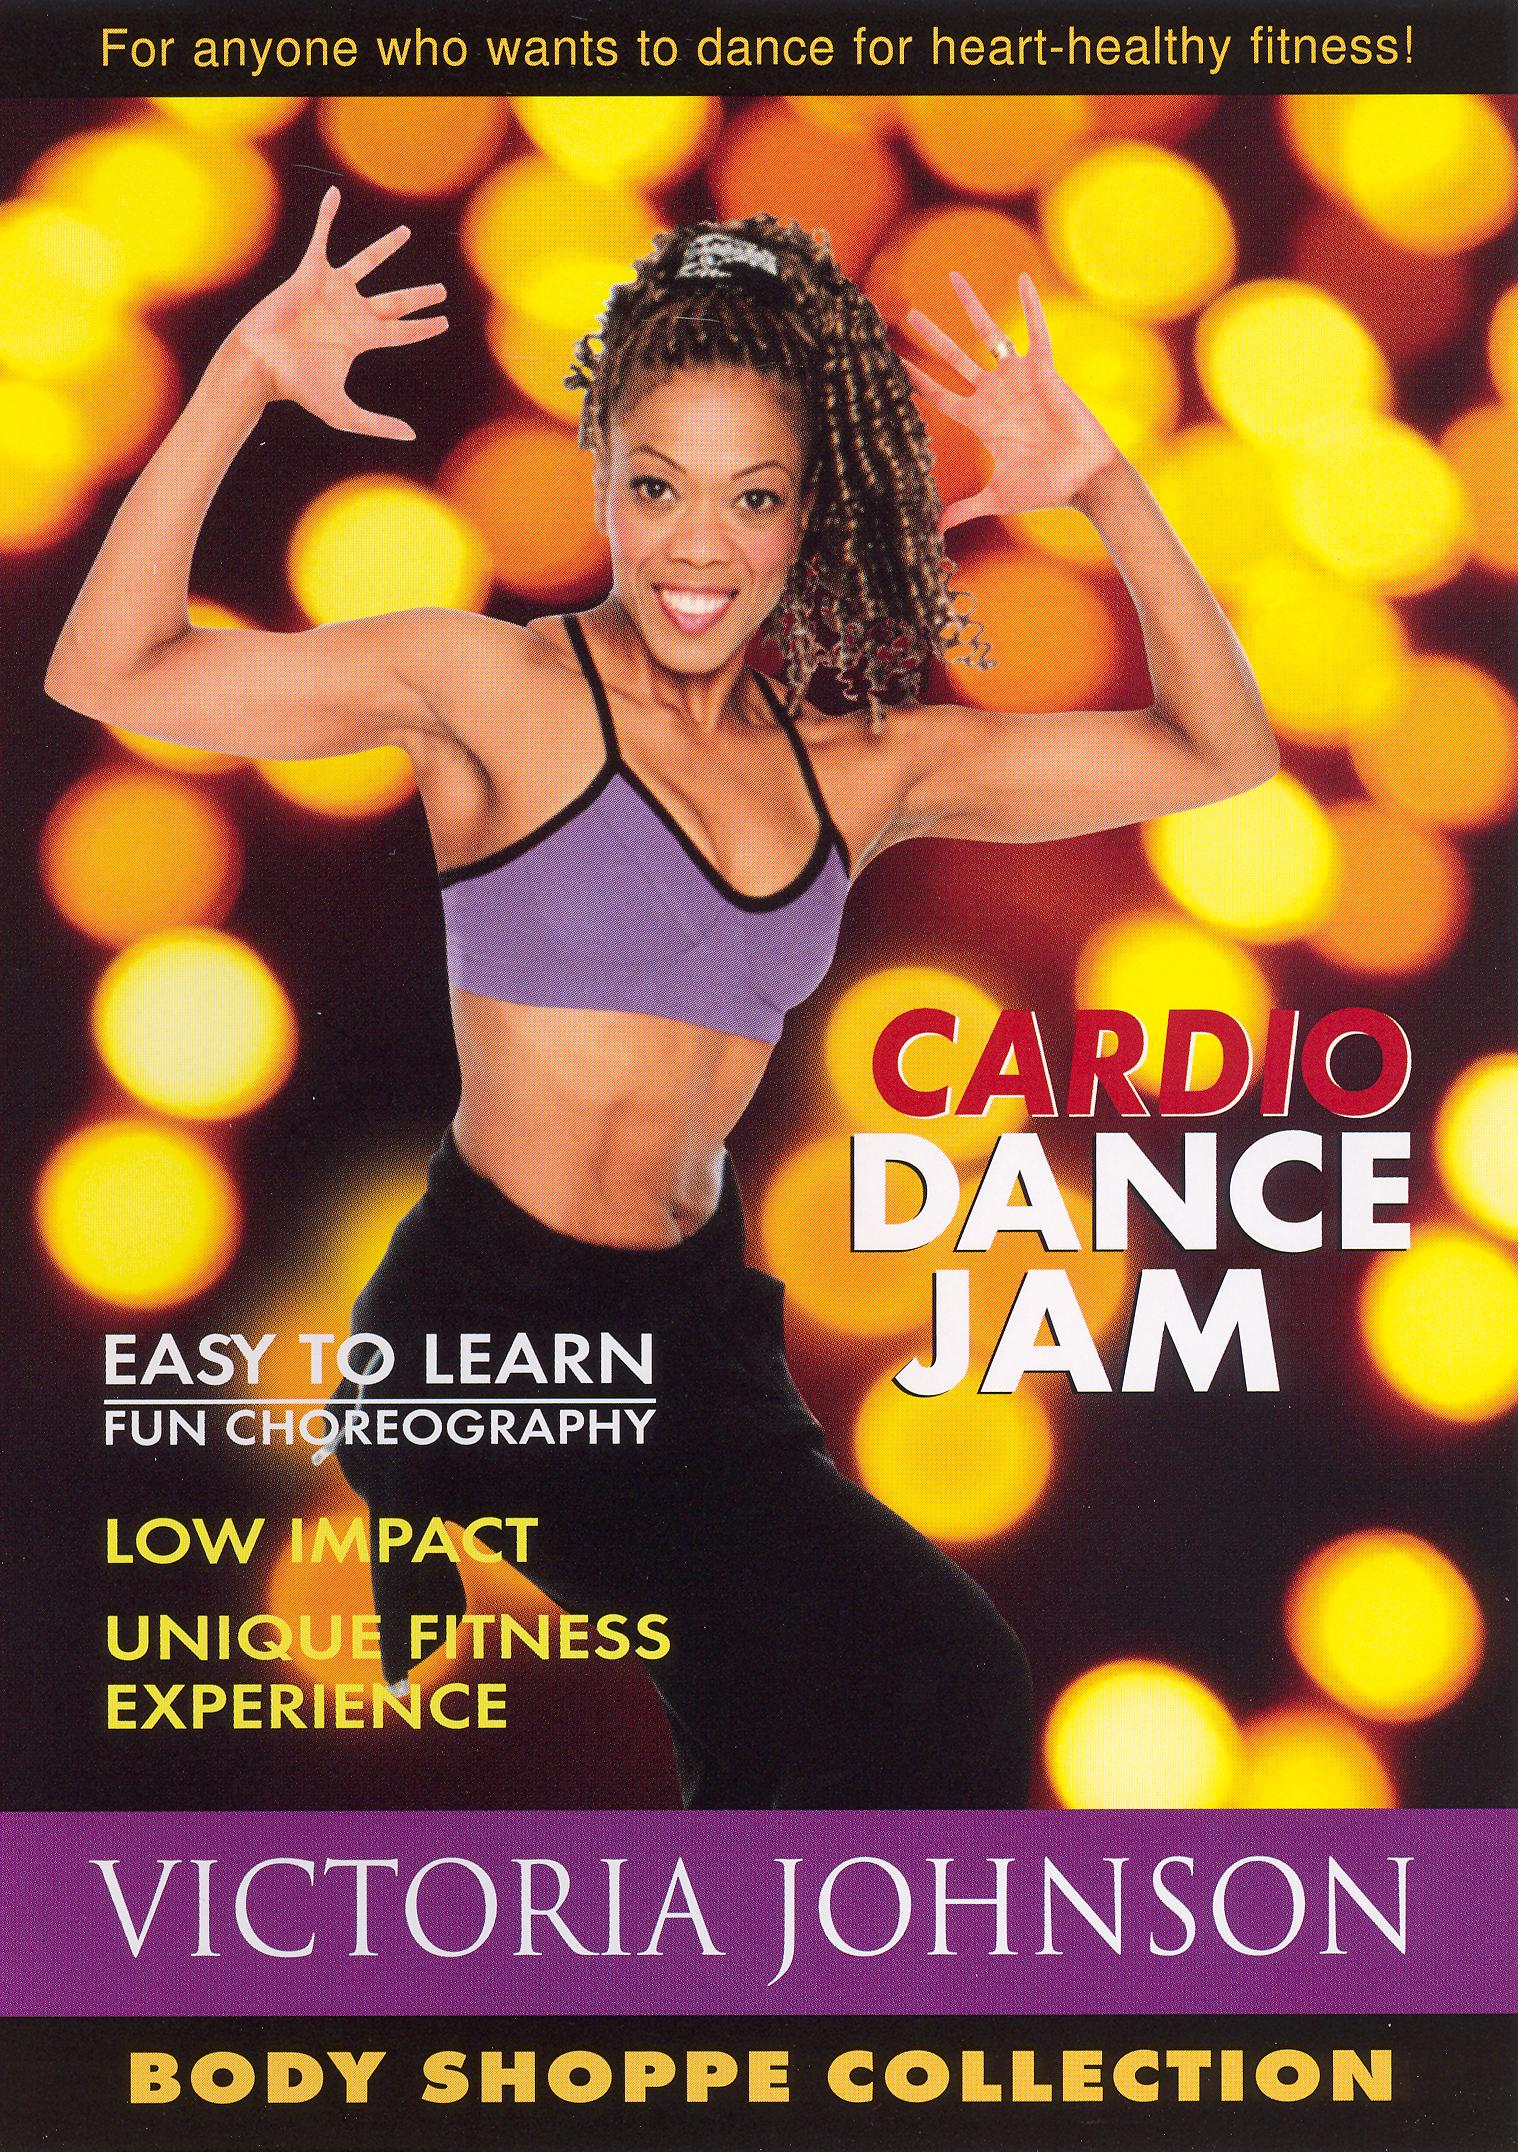 Victoria Johnson: Cardio Dance Jam